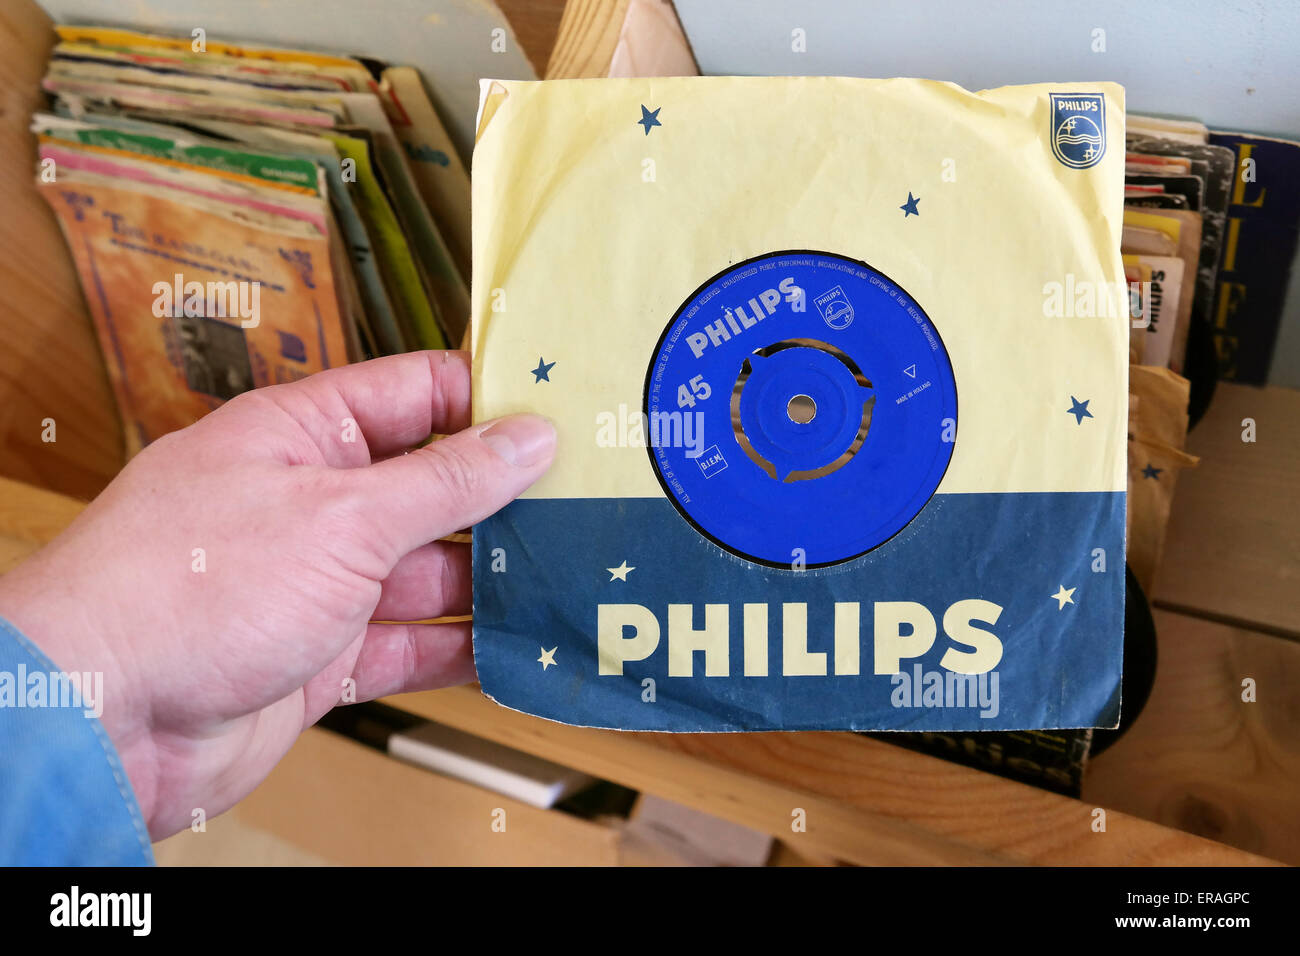 THE NETHERLANDS - MARCH 2015: Philips 45 rpm single record found in a second hand store. Philips Records is a record Stock Photo